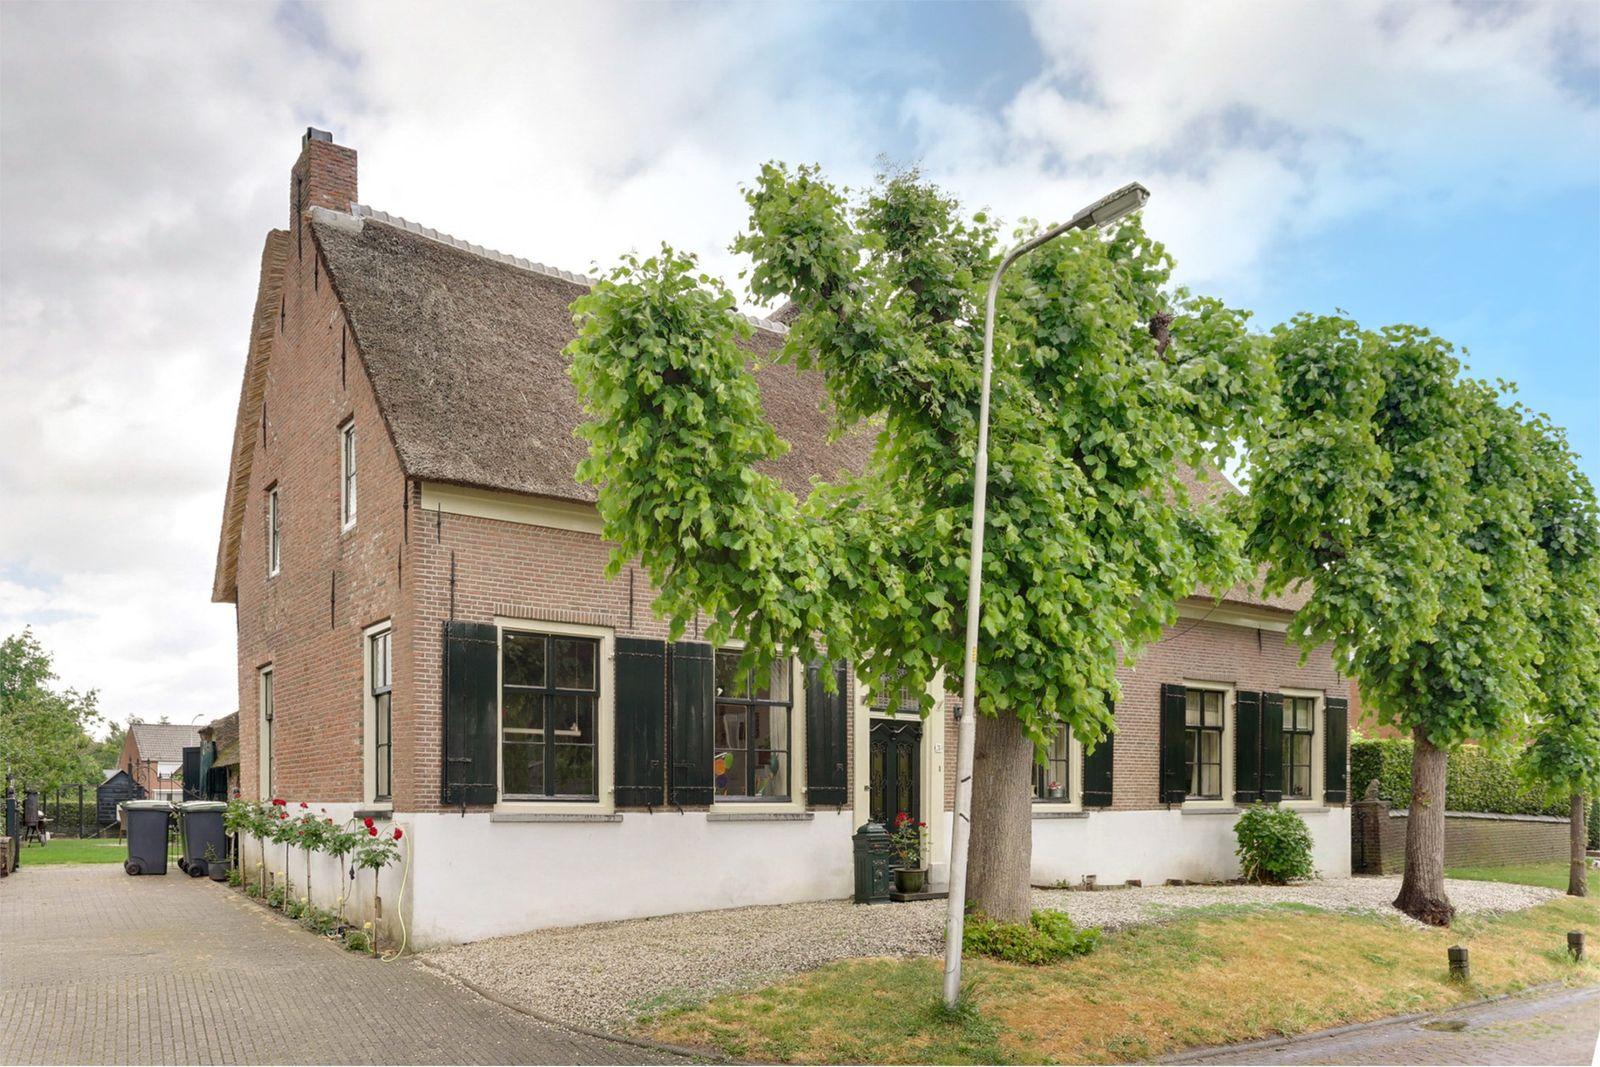 Middenstraat 28, Beesd